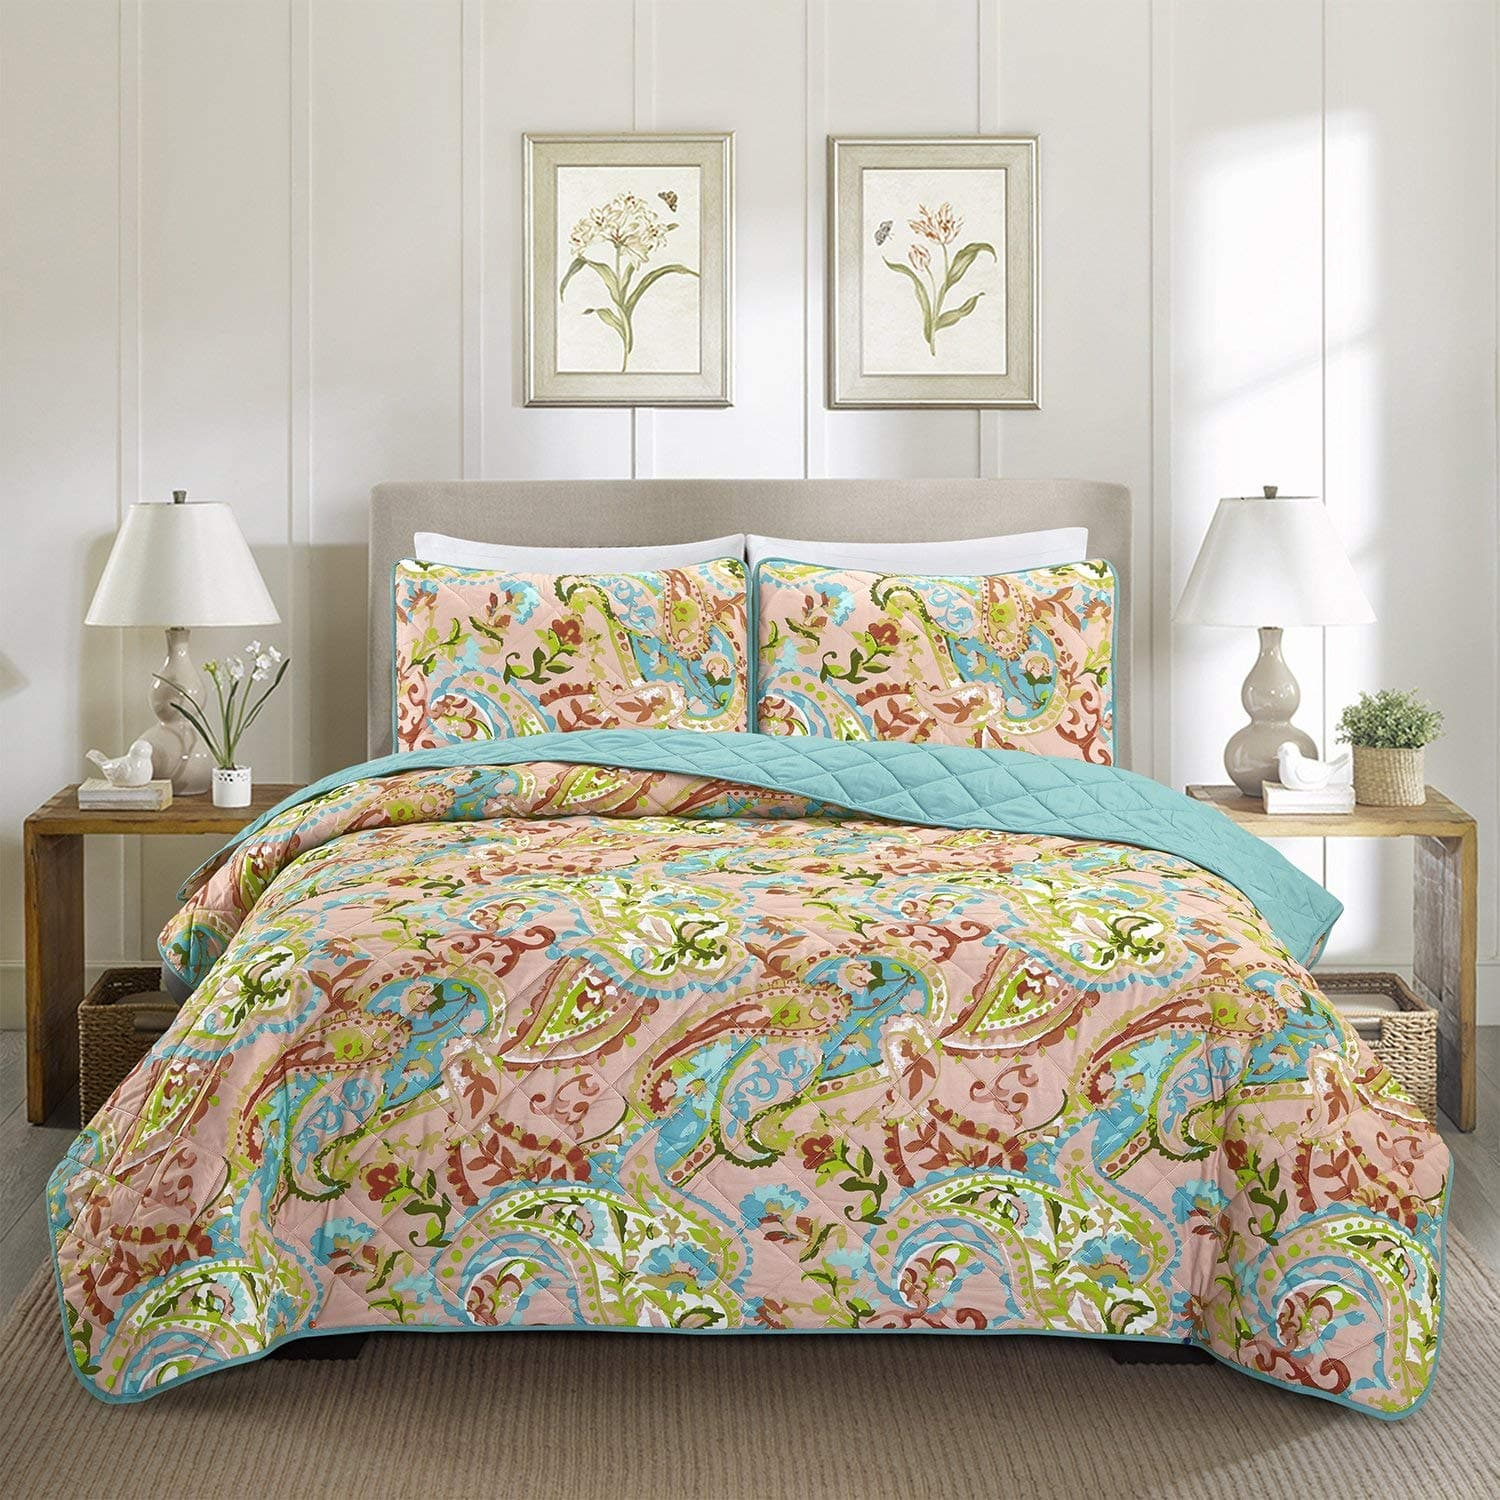 Quilt Bedding Sets $13.50 AC + FS (Prime)